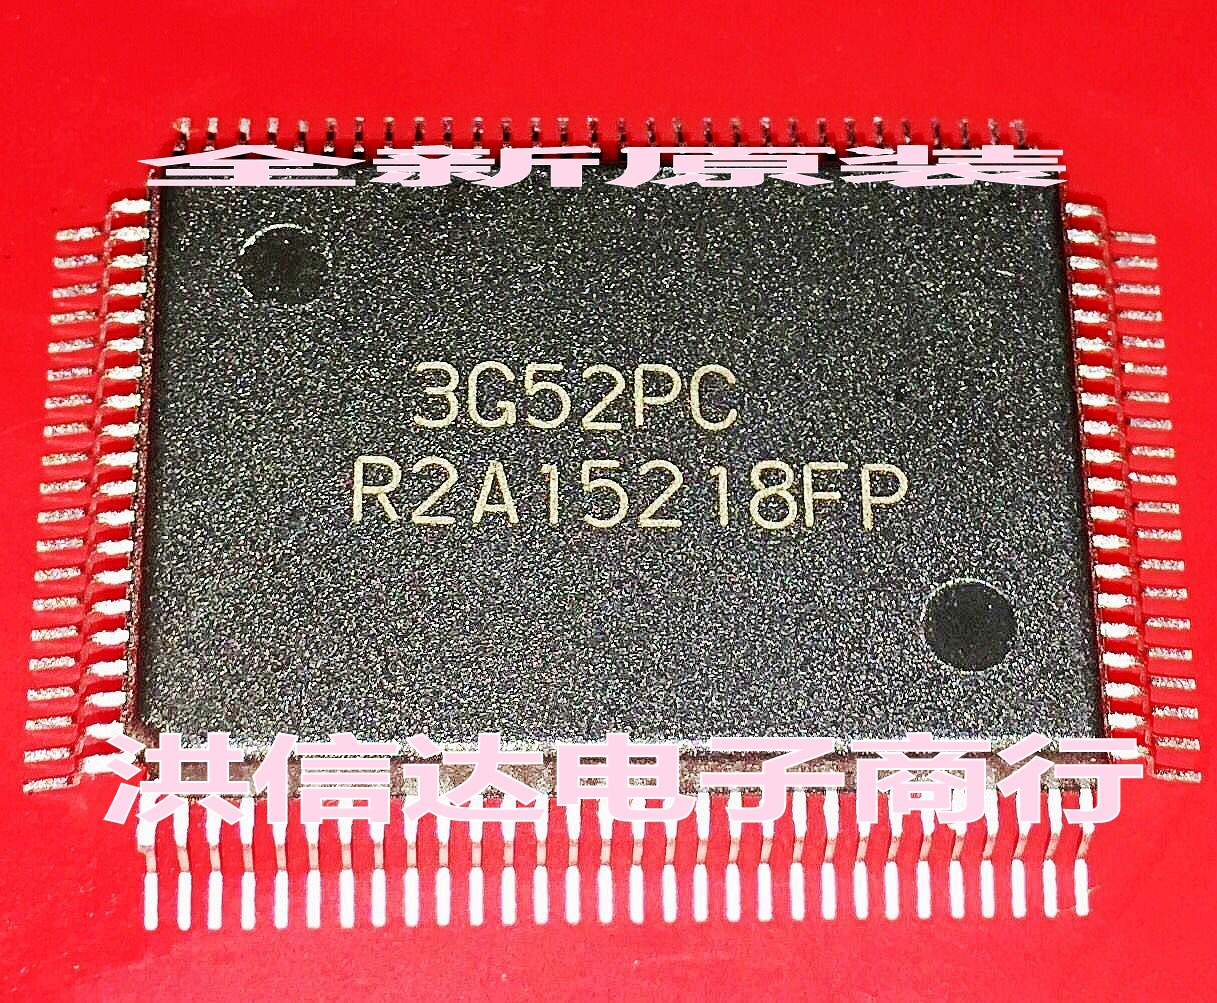 1pcs/lot R2A15218FP R2A15218F R2A15218 QFP-100 In Stock